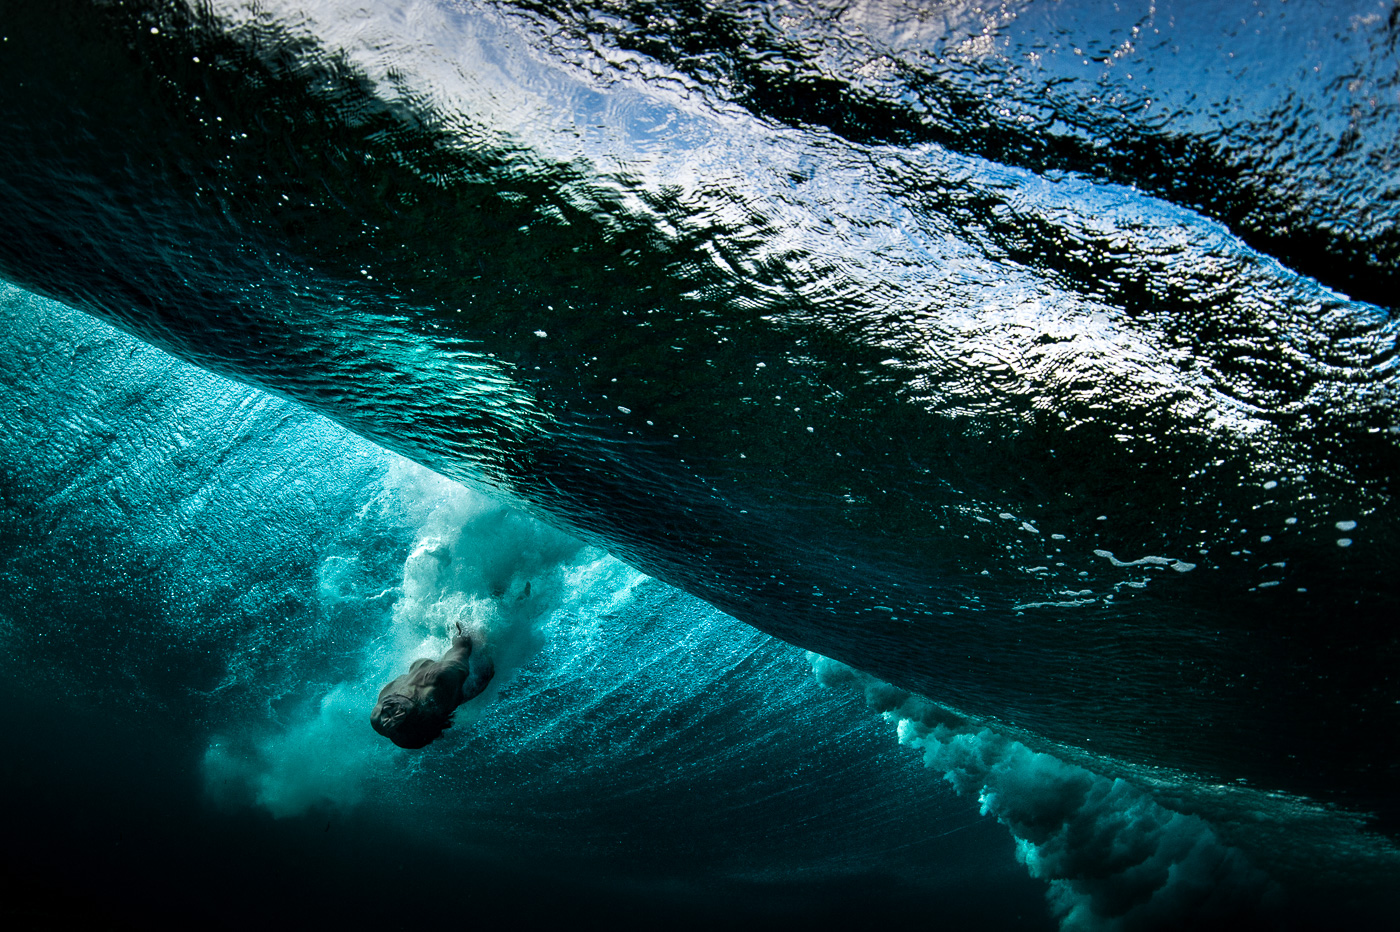 underwater heavy and big wave body surfing